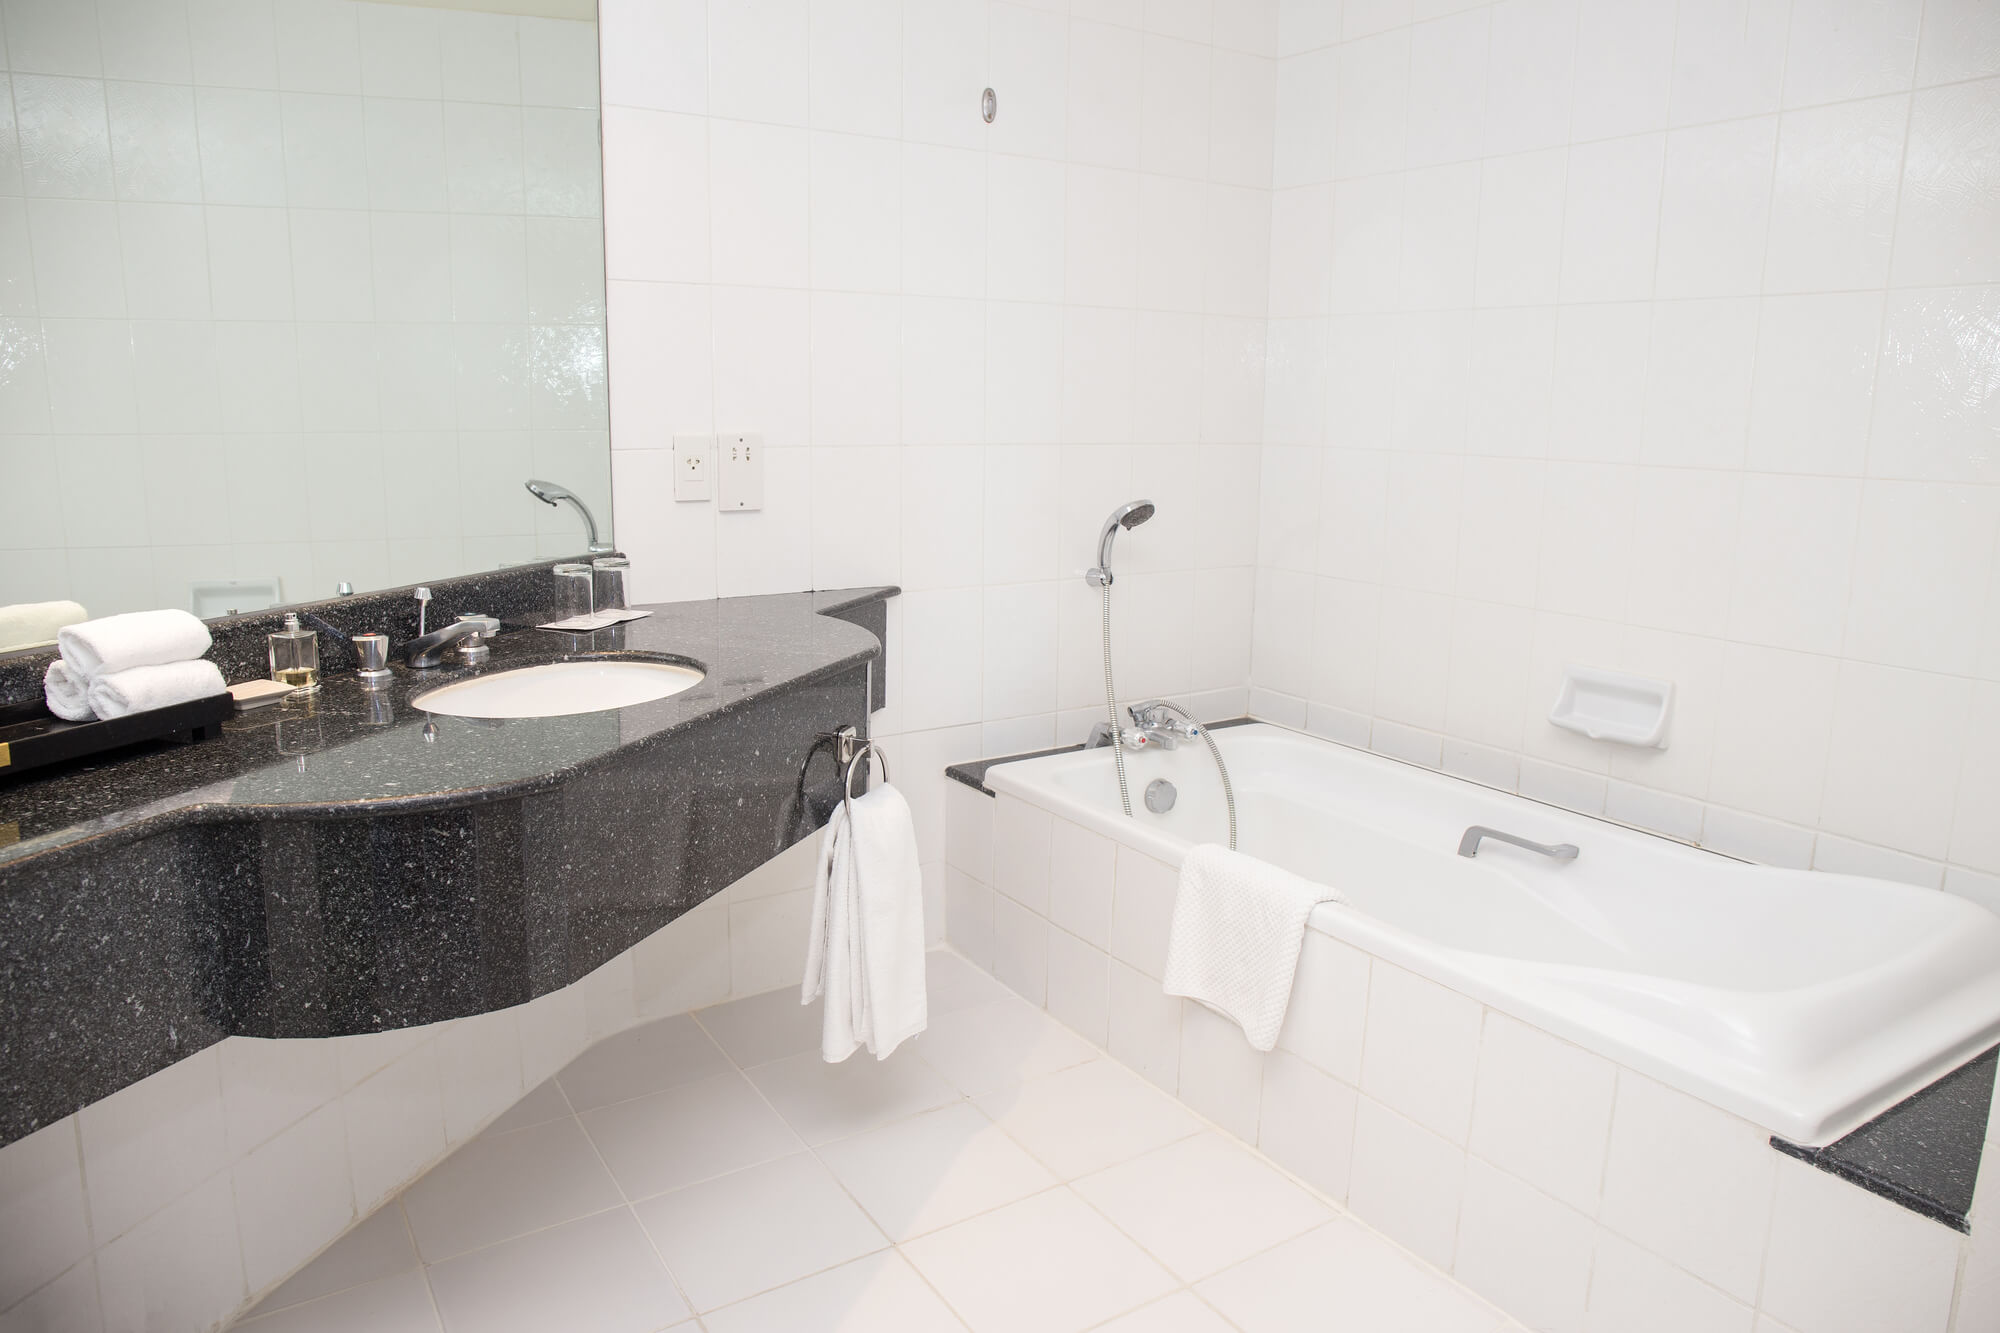 Replacement, Especially Bathtubs, Includes Expensive Tradesmen And A Week  Of Hassles. Frequently Demolition Is Required. That Means Noisy, Dusty Work  That ...